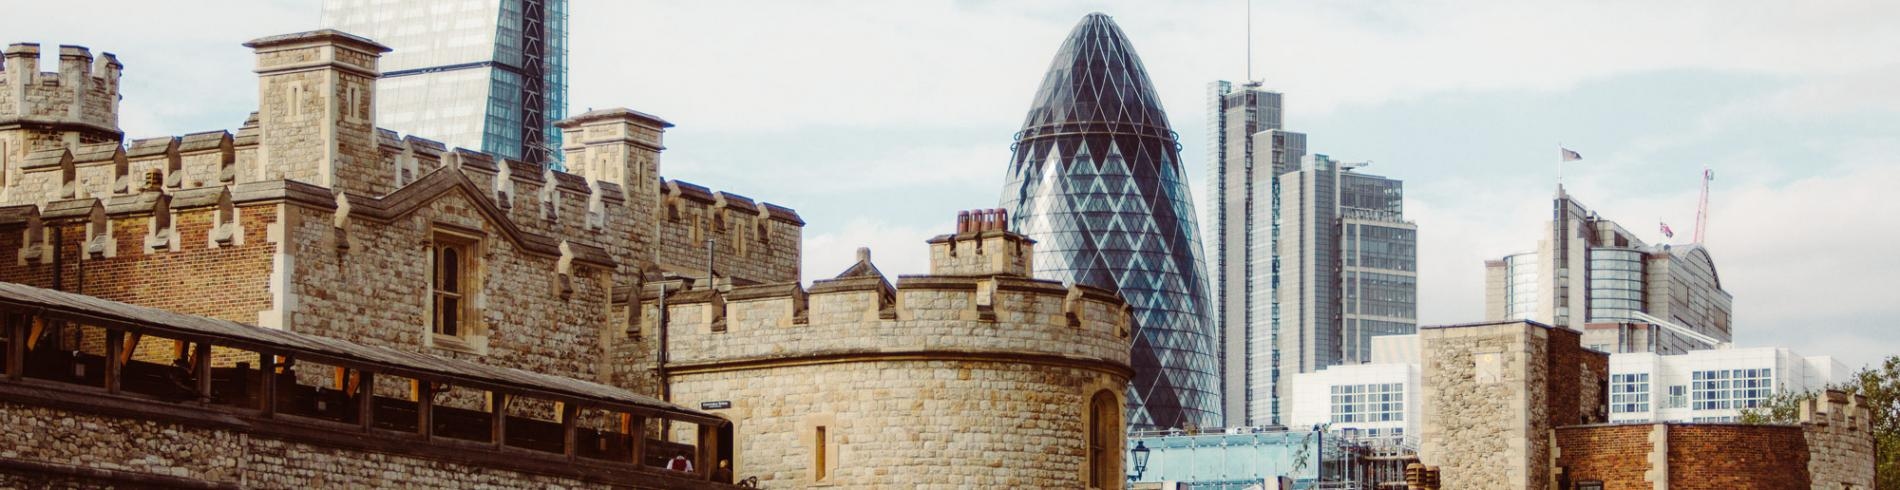 The Tower of London and Gherkin